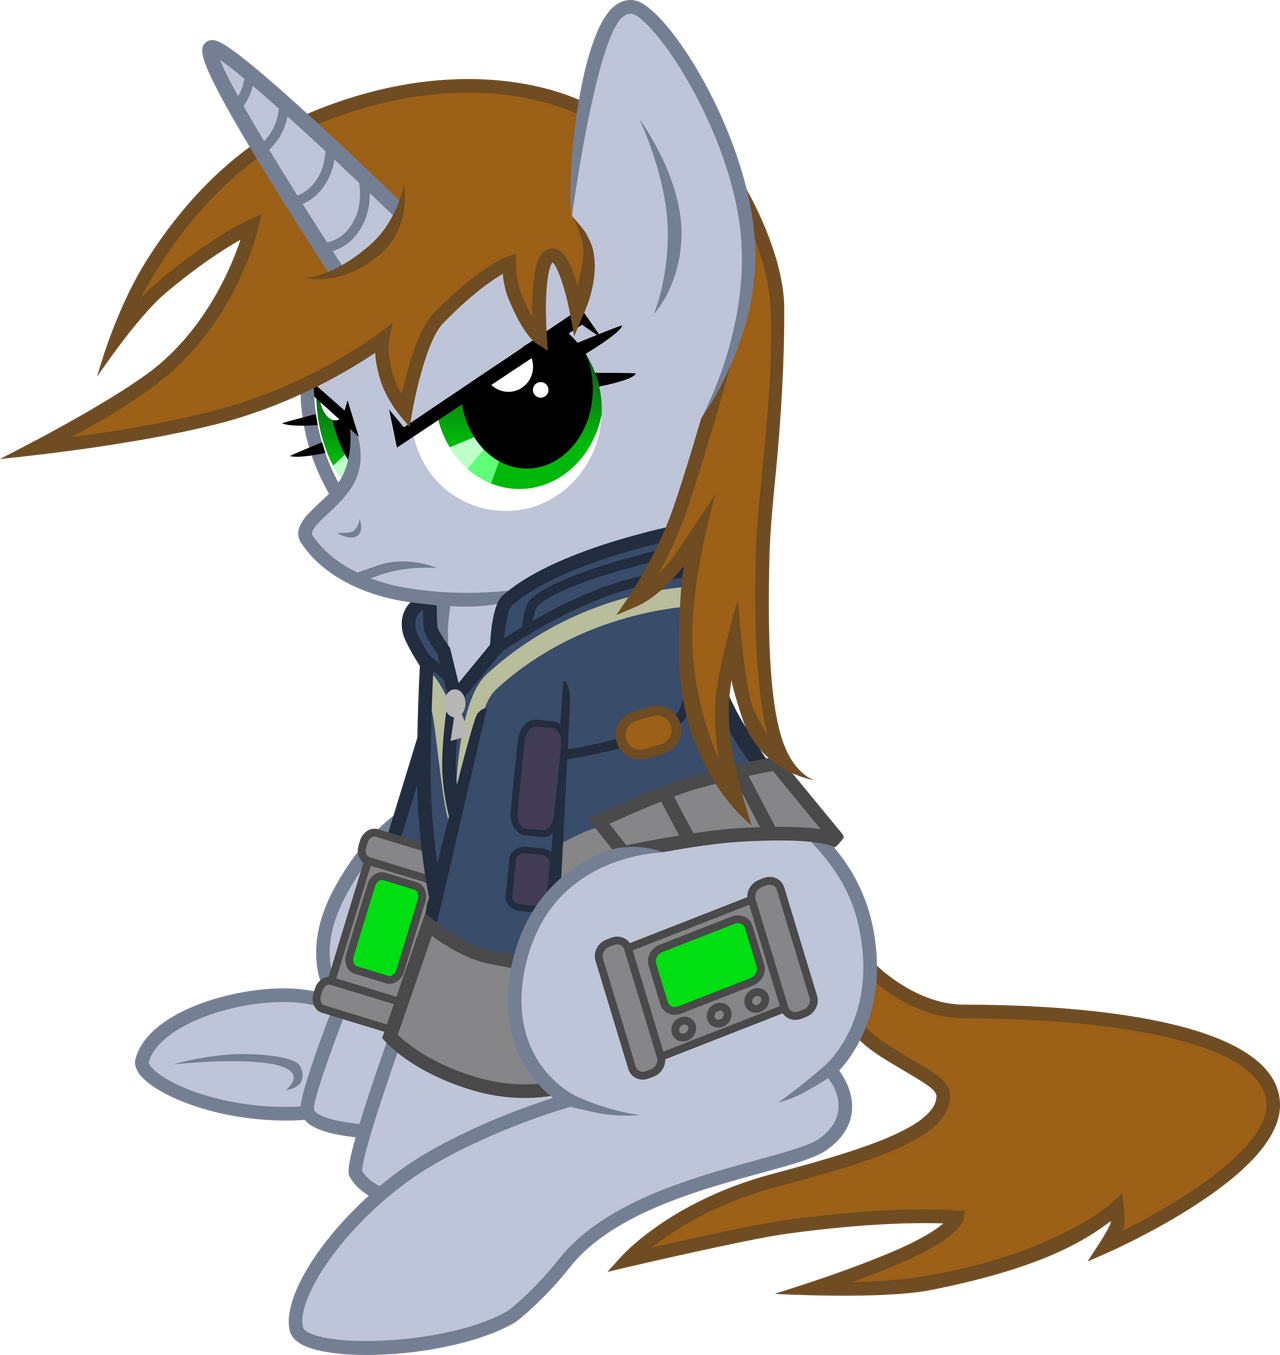 [Image: little_pip_is_not_amused_by_groxy_cyber_...5ld944.png]